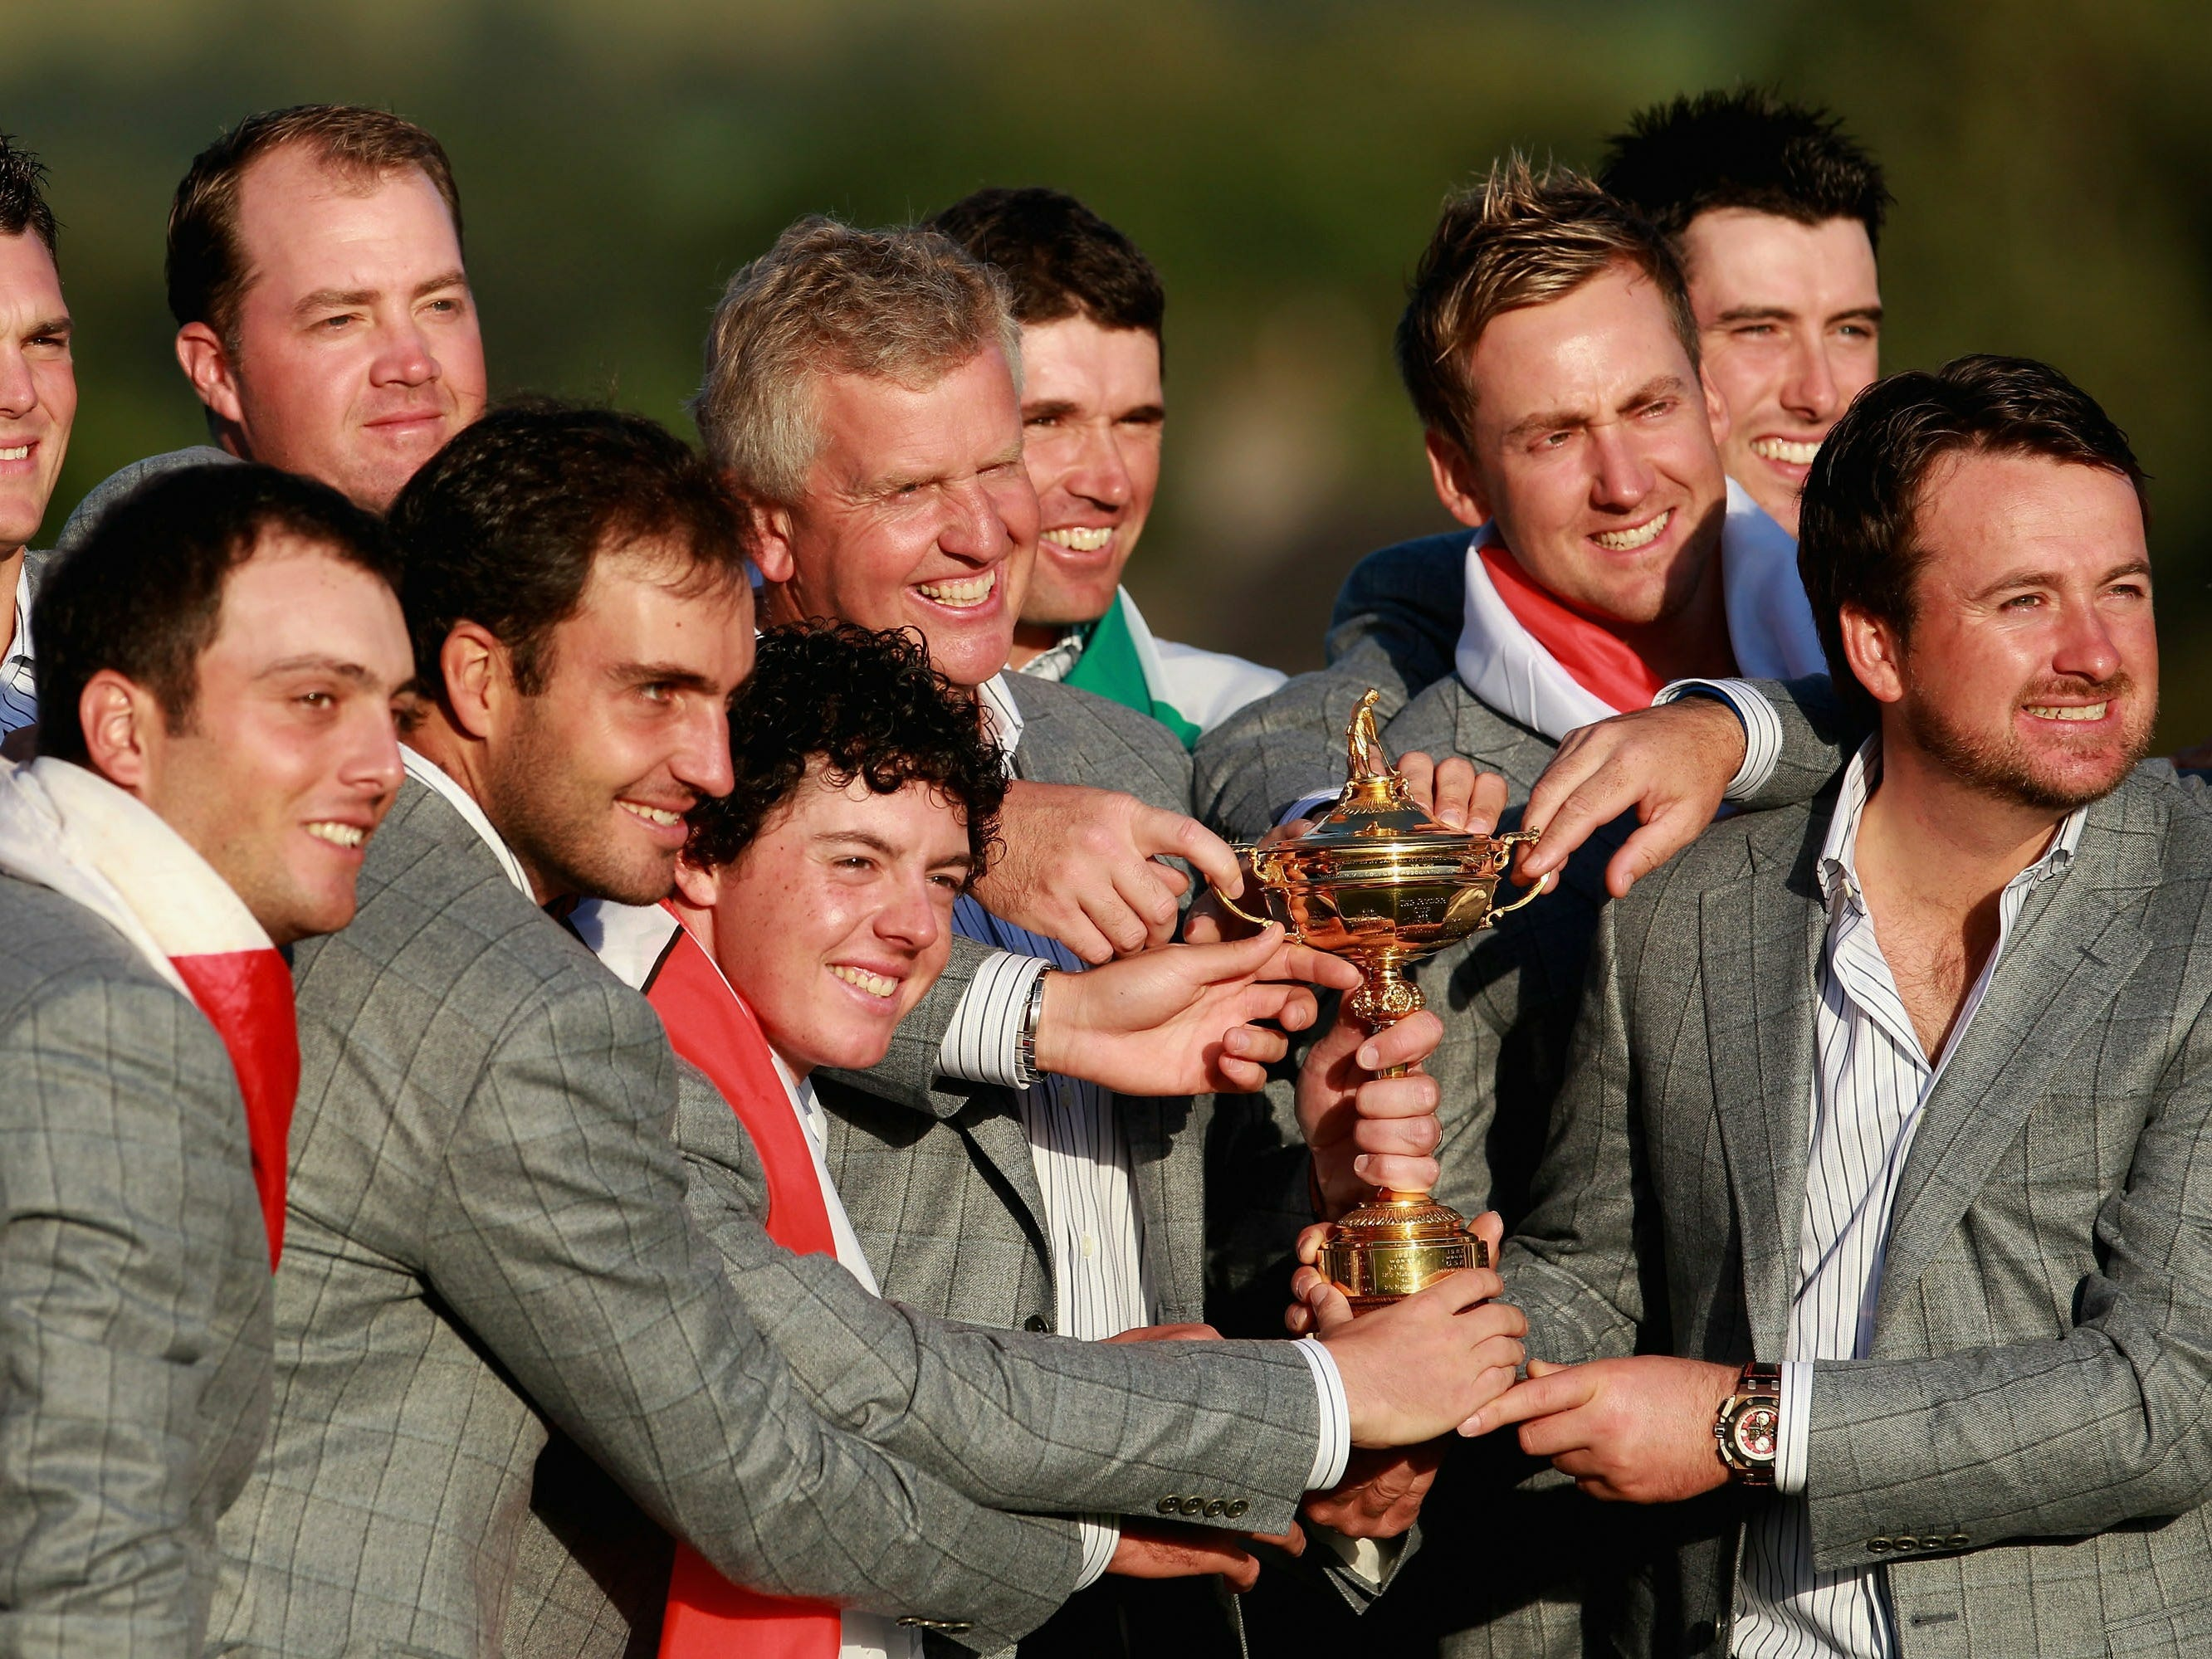 Team Europe, 2010: Captain Colin Montgomerie poses with the Ryder Cup and his team following their 14.5 - 13.5 victory over the USA.